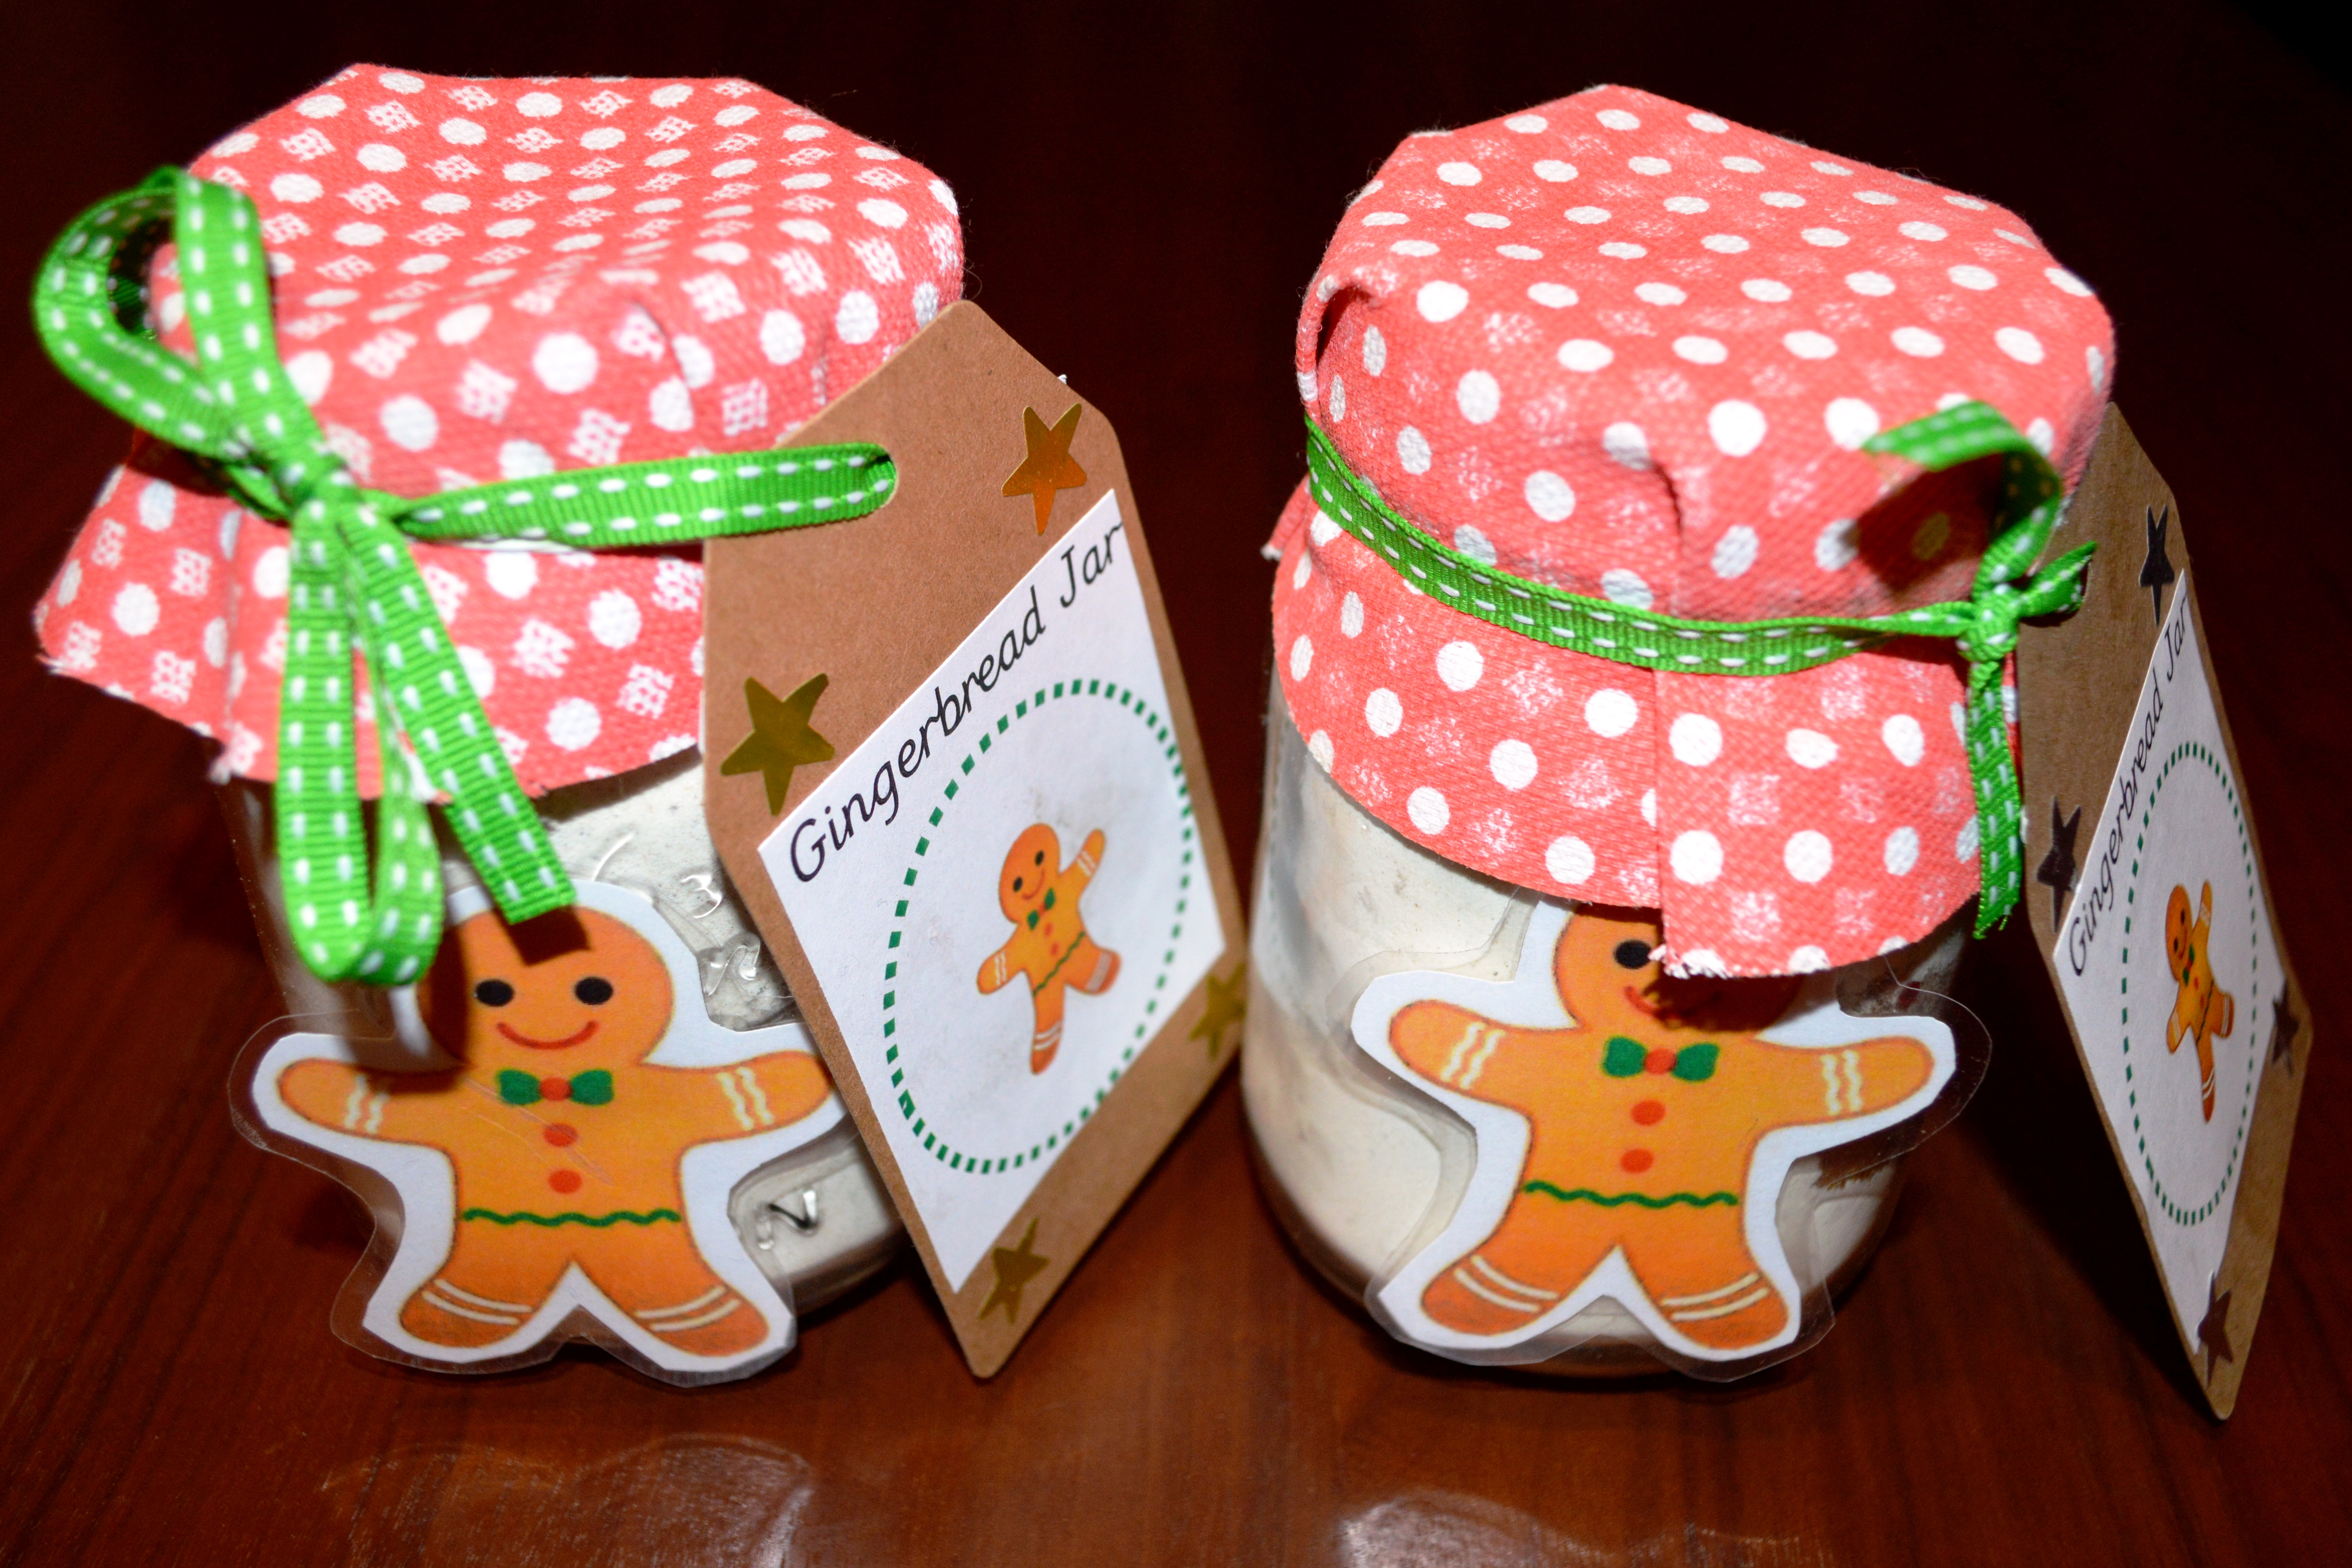 Gingerbread party, gingerbread jars, gingerbread favours